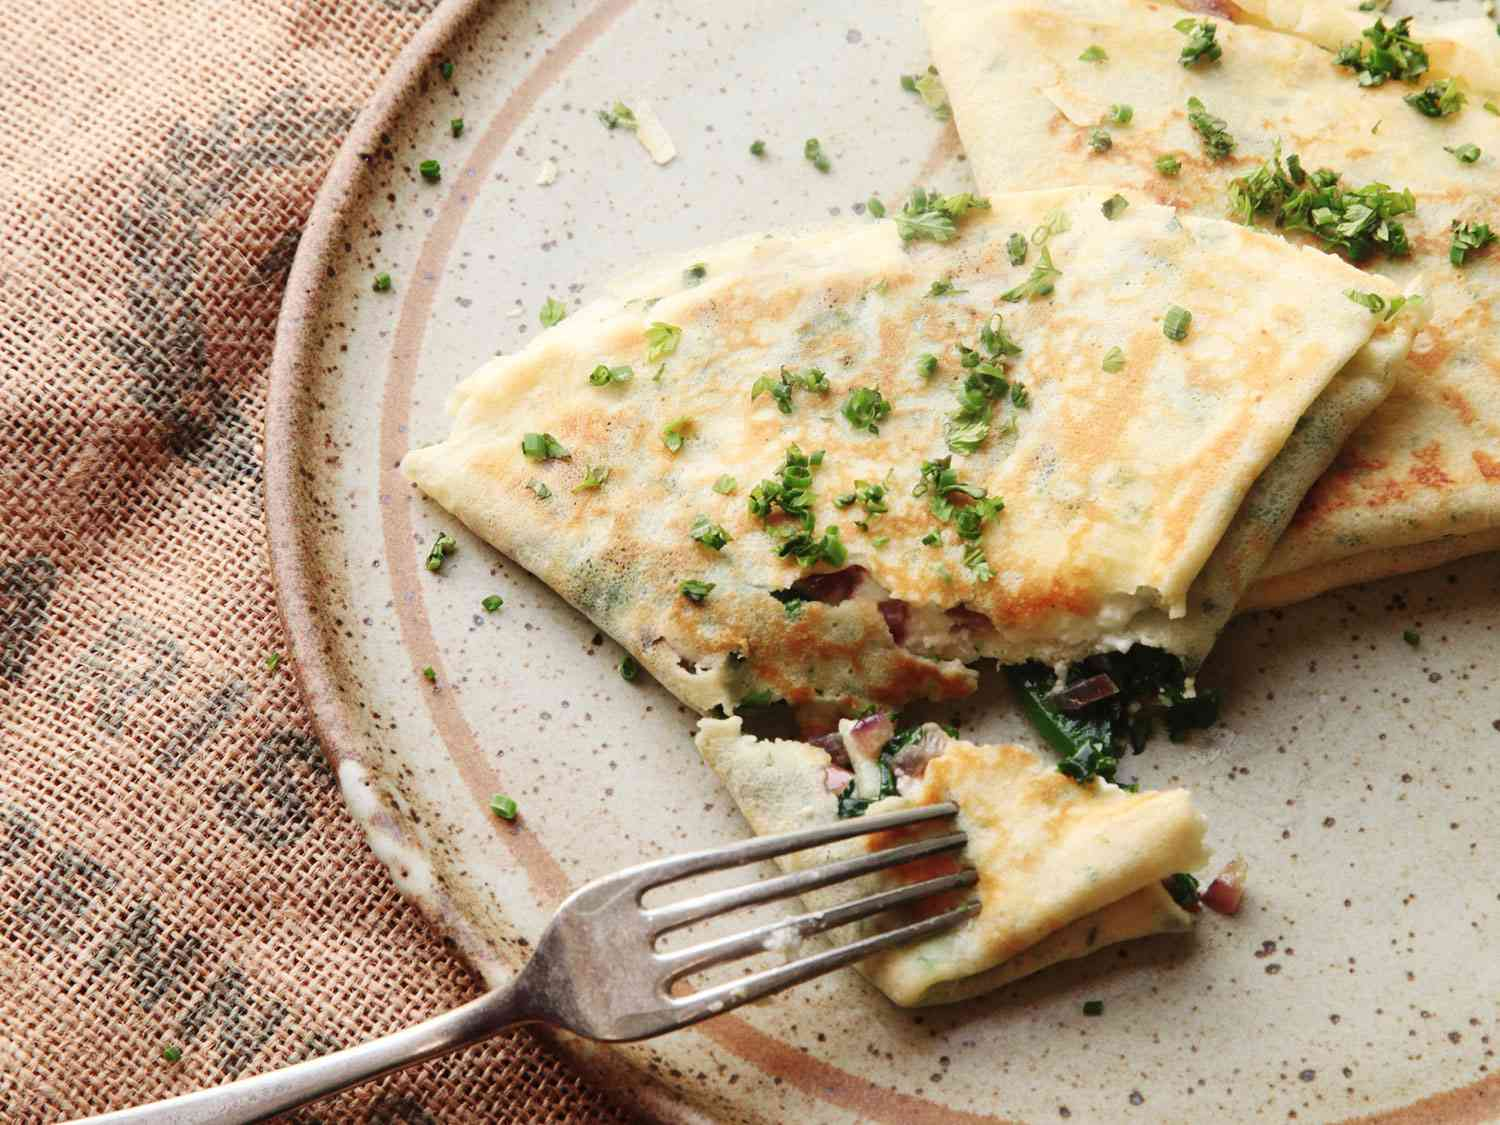 A plate of French crepes with spinach and feta, sprinkled with herbs on top.